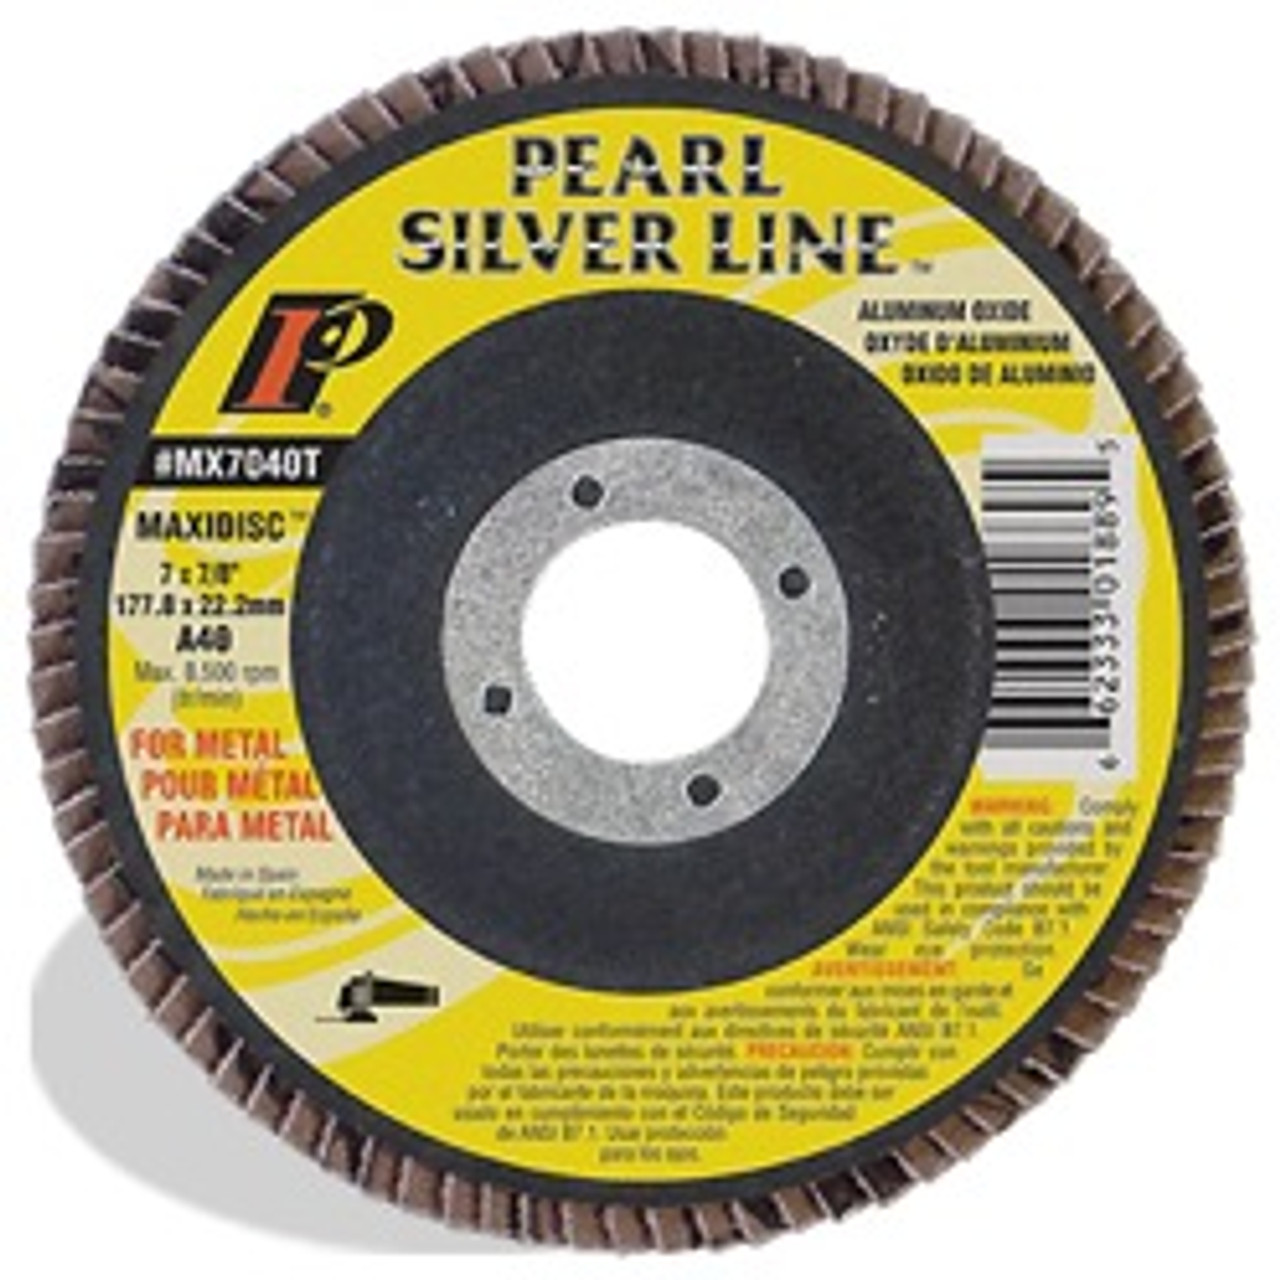 4-1/2 x 5/8-11 Silver Line䋢 AO Maxidisc䋢 Flap Discs for Metal, Type 27 Shape A40